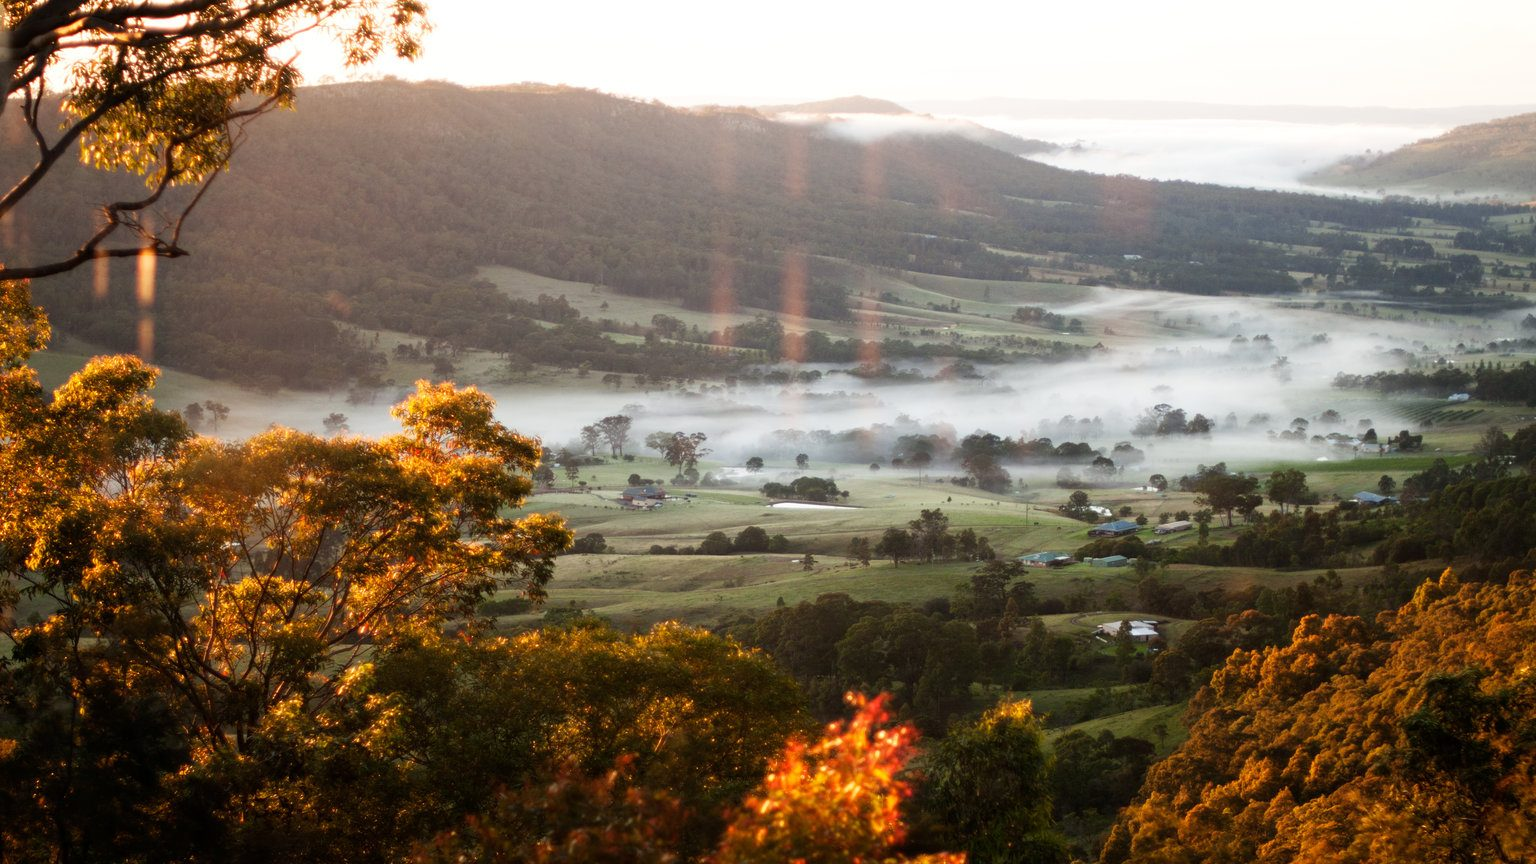 Looking down valley filled with mist.